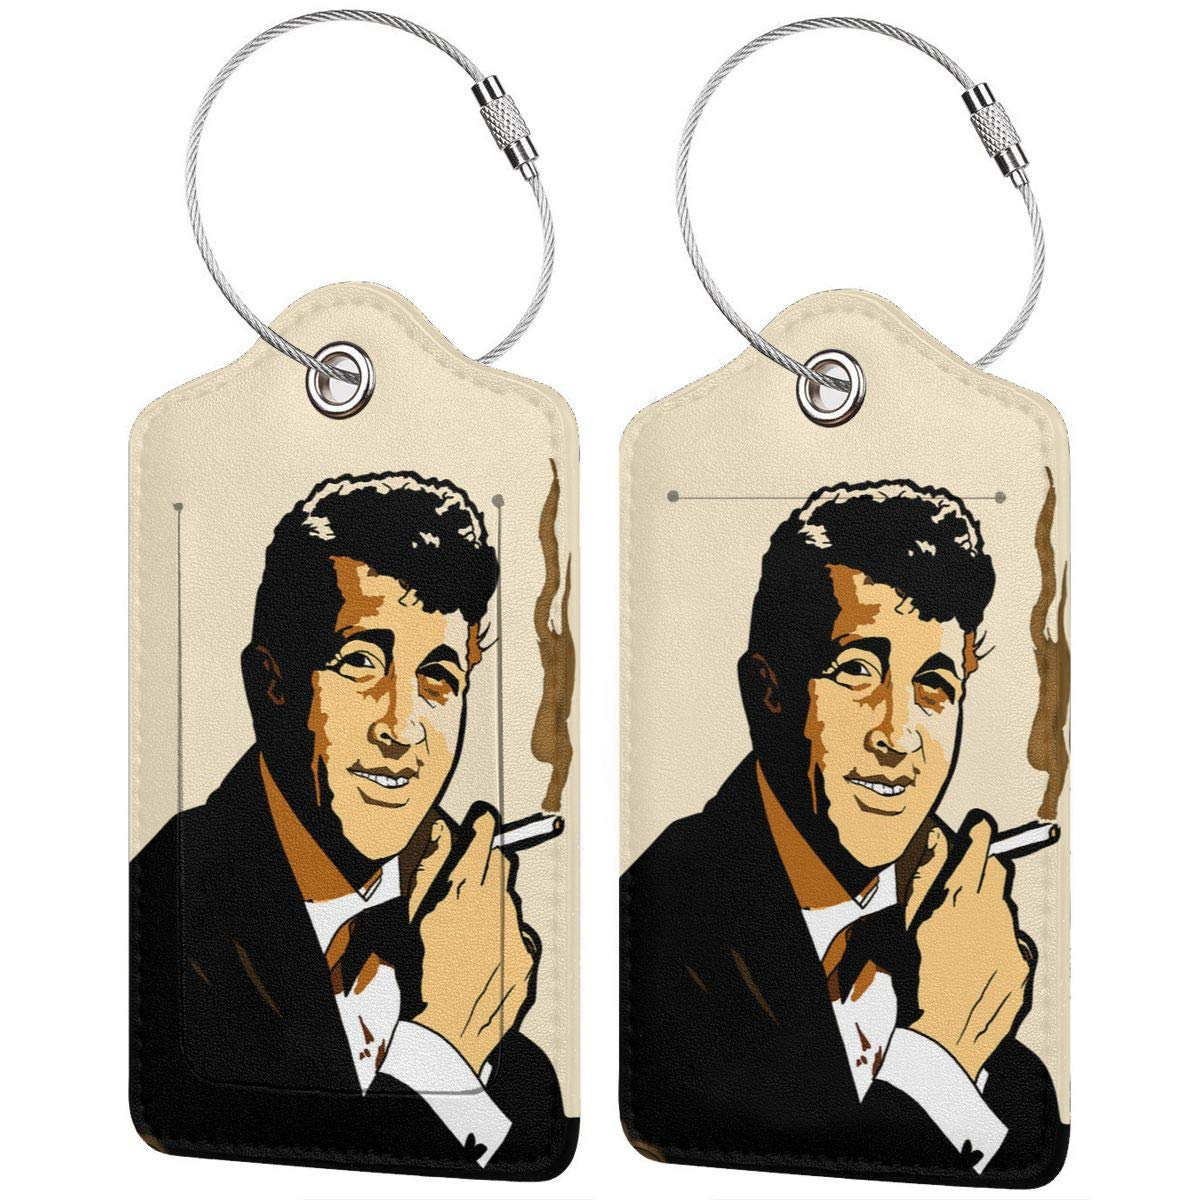 Smoking Dean Martin Leather Luggage Tag Travel ID Label For Baggage Suitcase